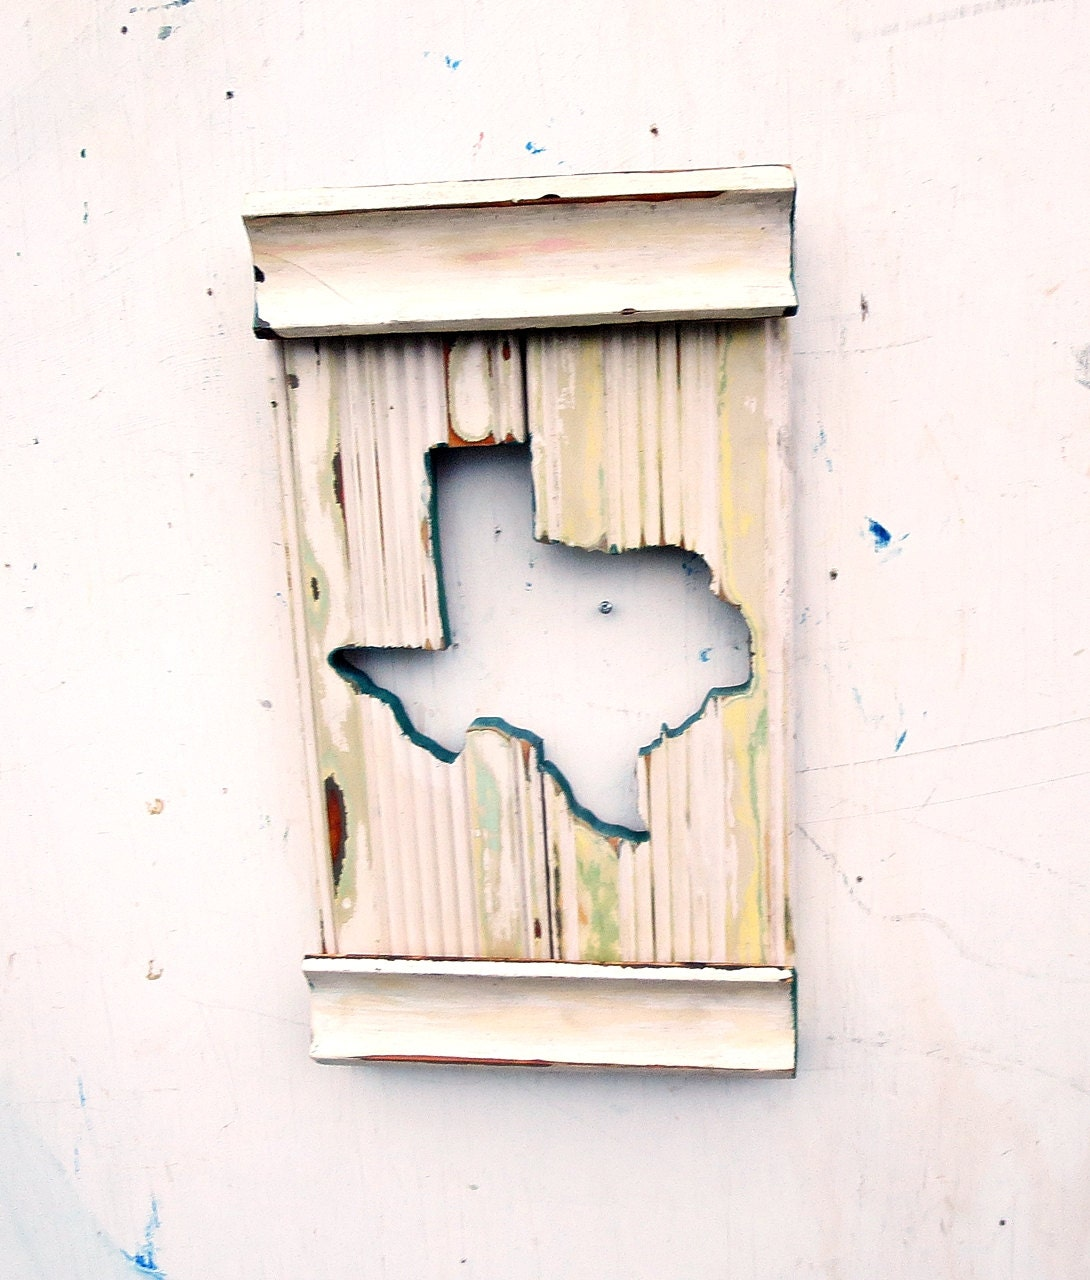 Texas Wall Art Rustic Wood Decor Rustic Texas Decor State